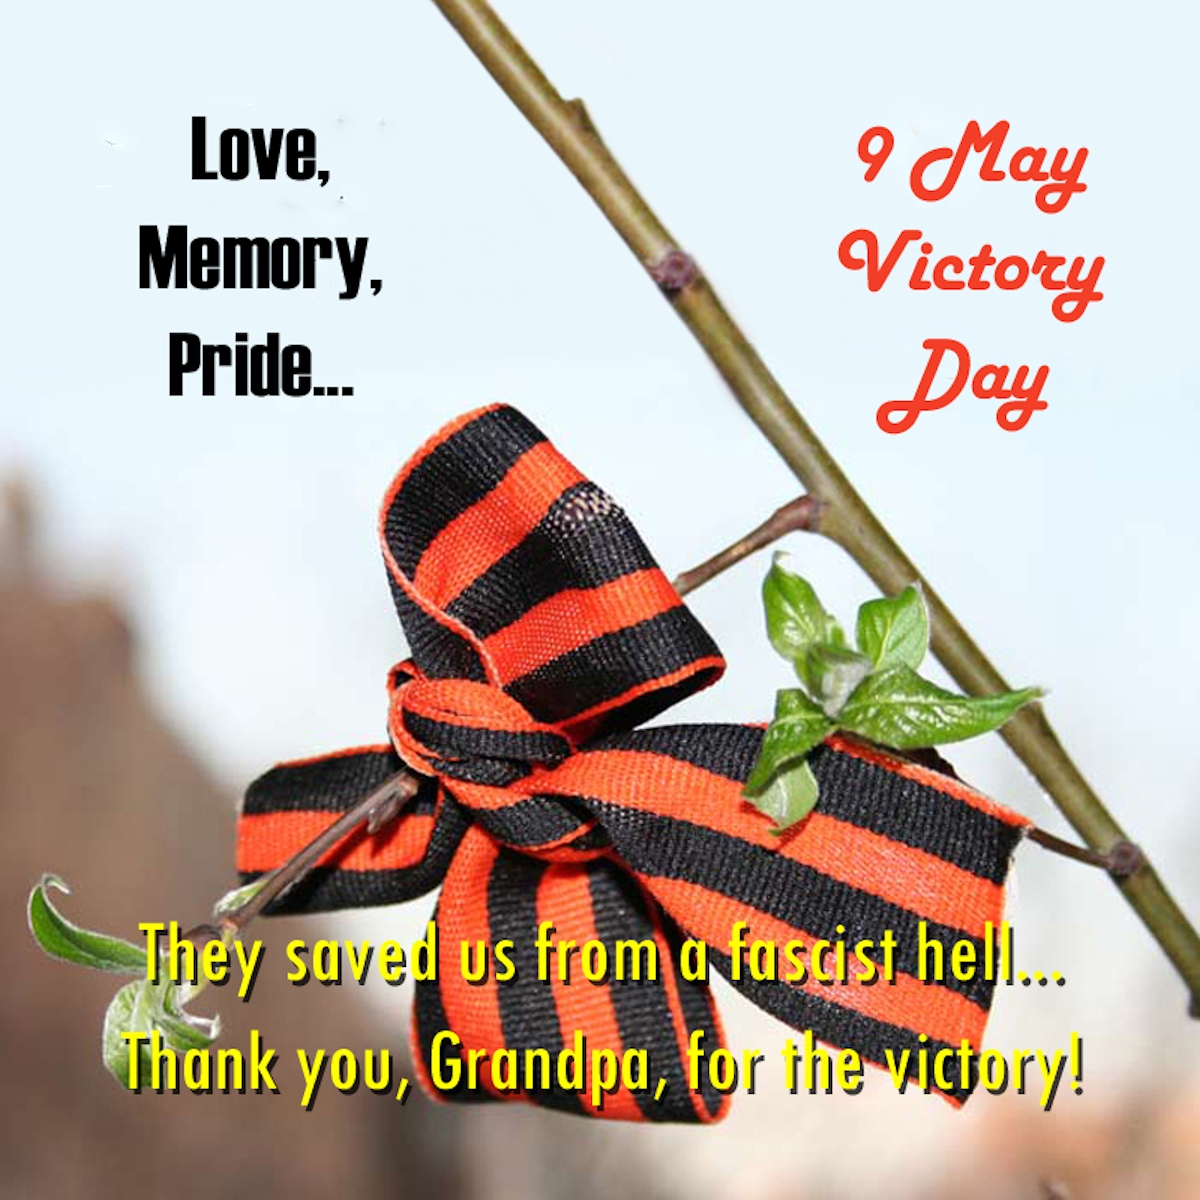 00 9 may. victory day 01. 08.10.14